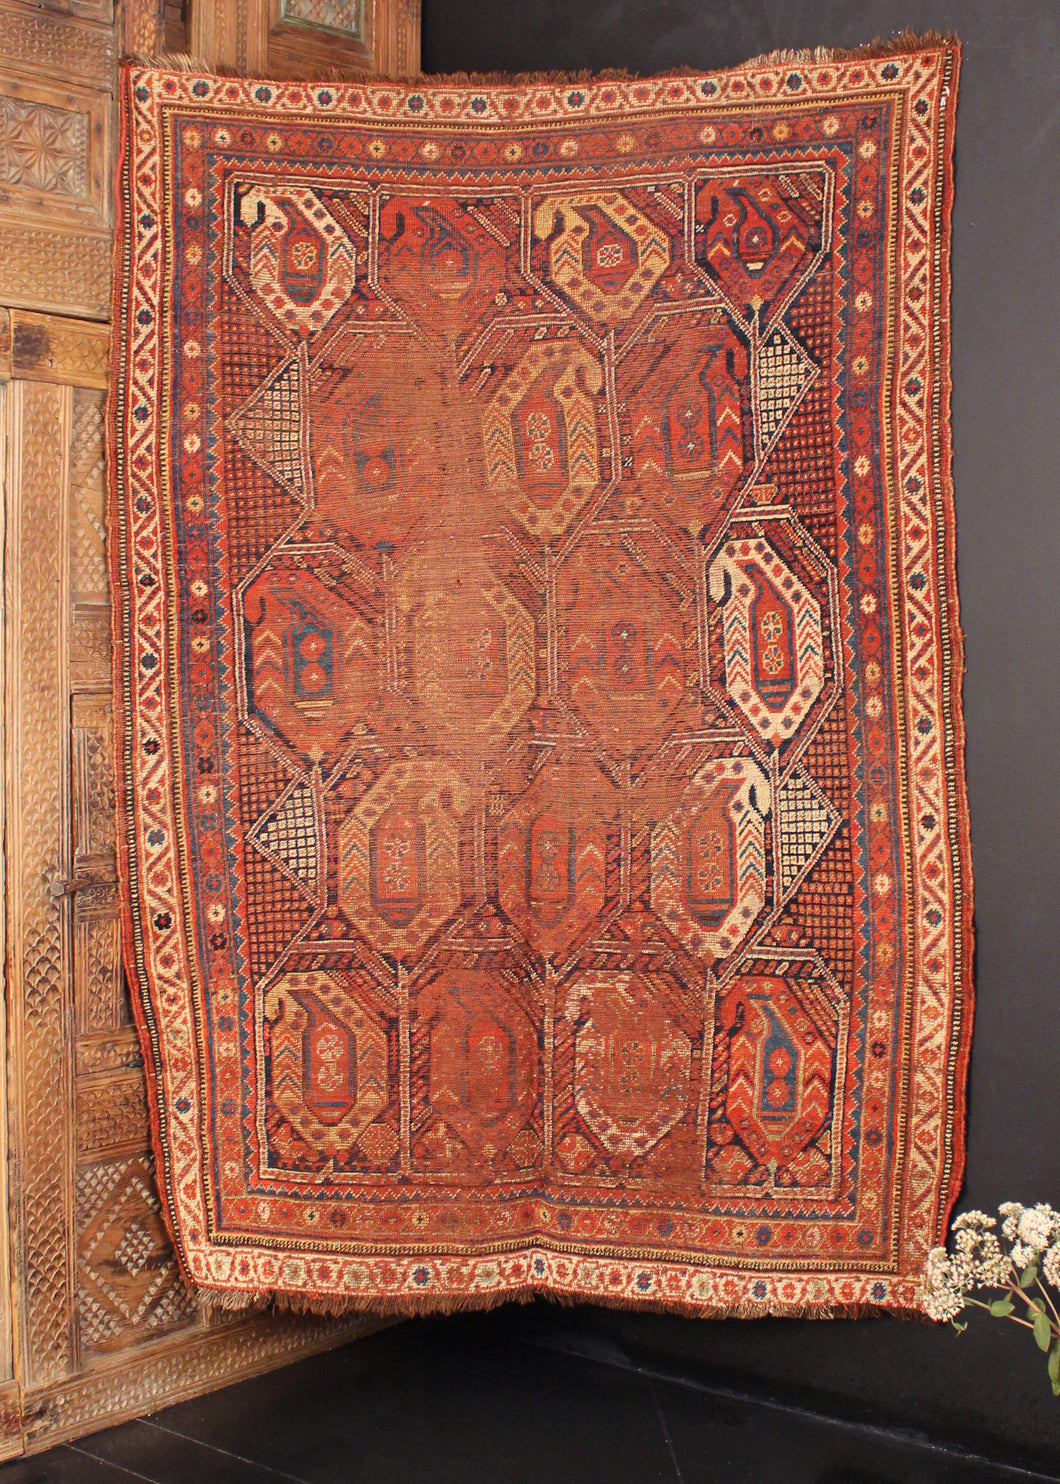 Qashqai rug handwoven at turn of the 20th century in Southwest Iran. Red, blue and yellow with white. Five rows of encapsulated botehs in rows of three or four.